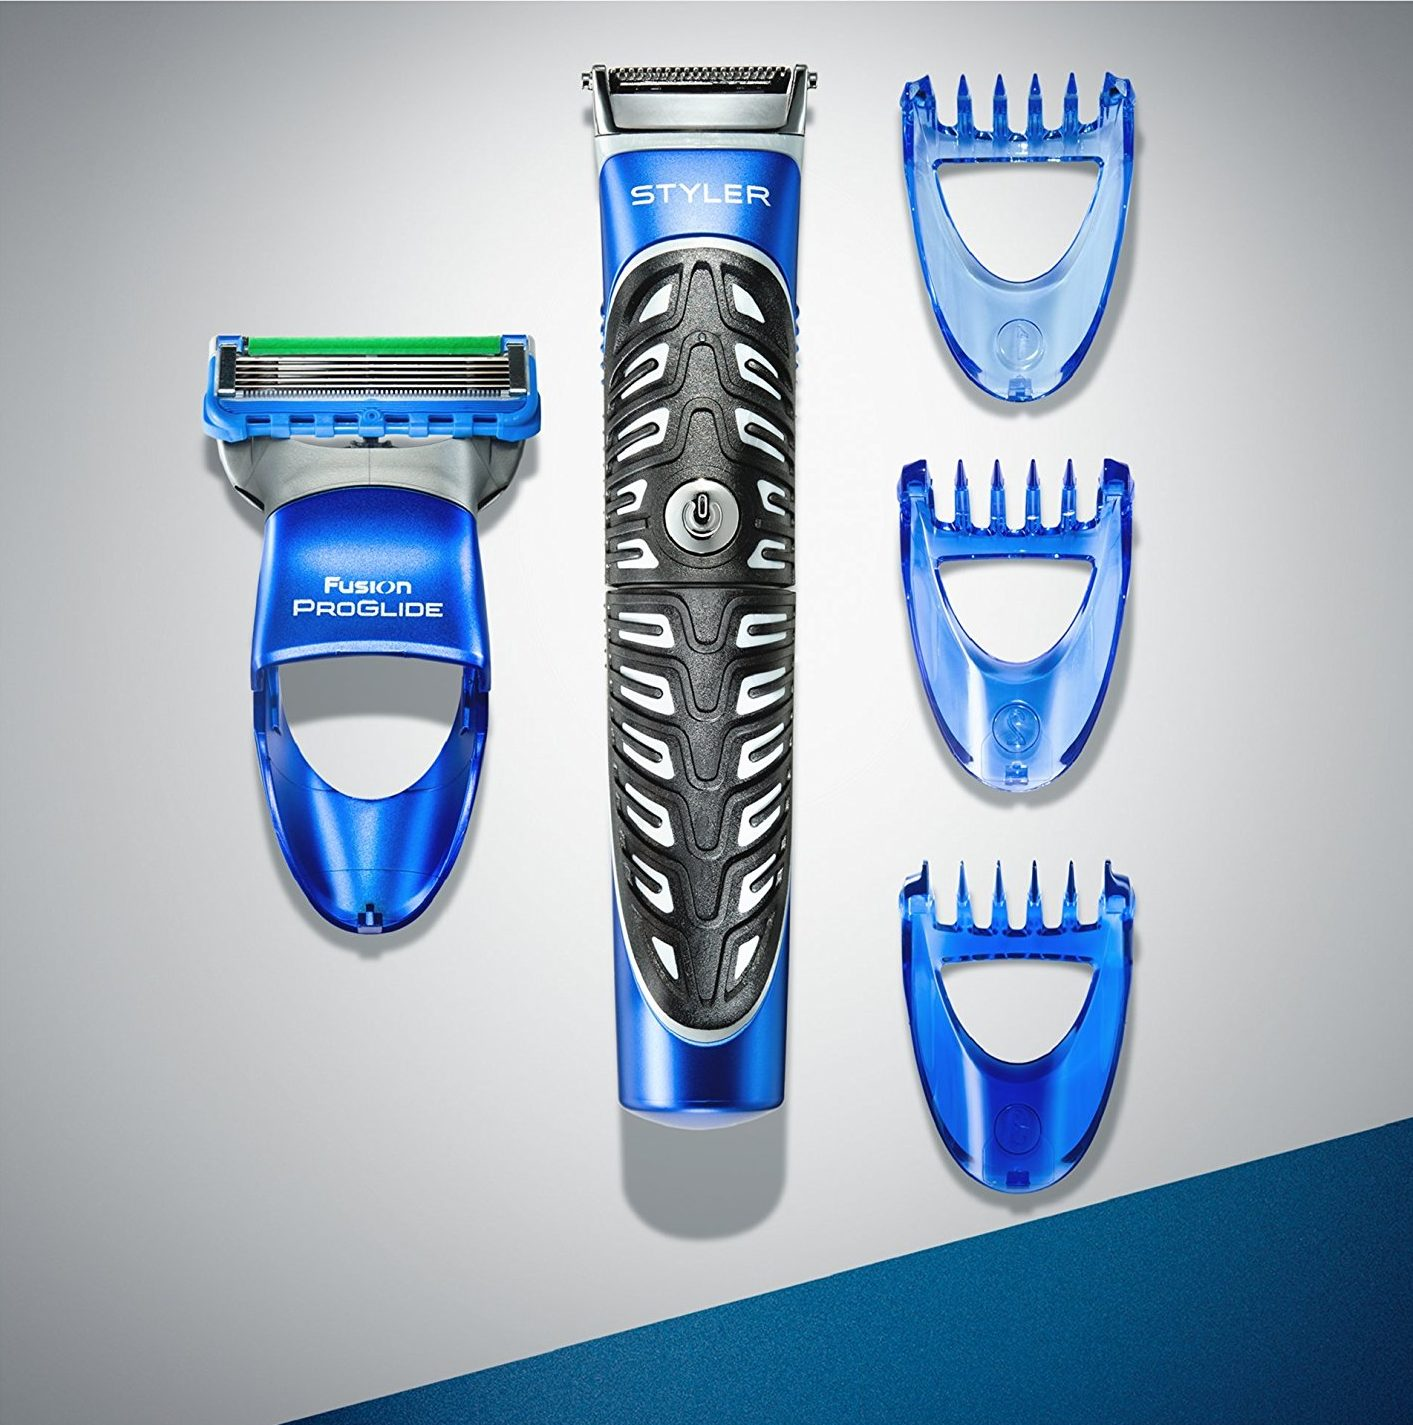 Gillette  All Purpose Styler